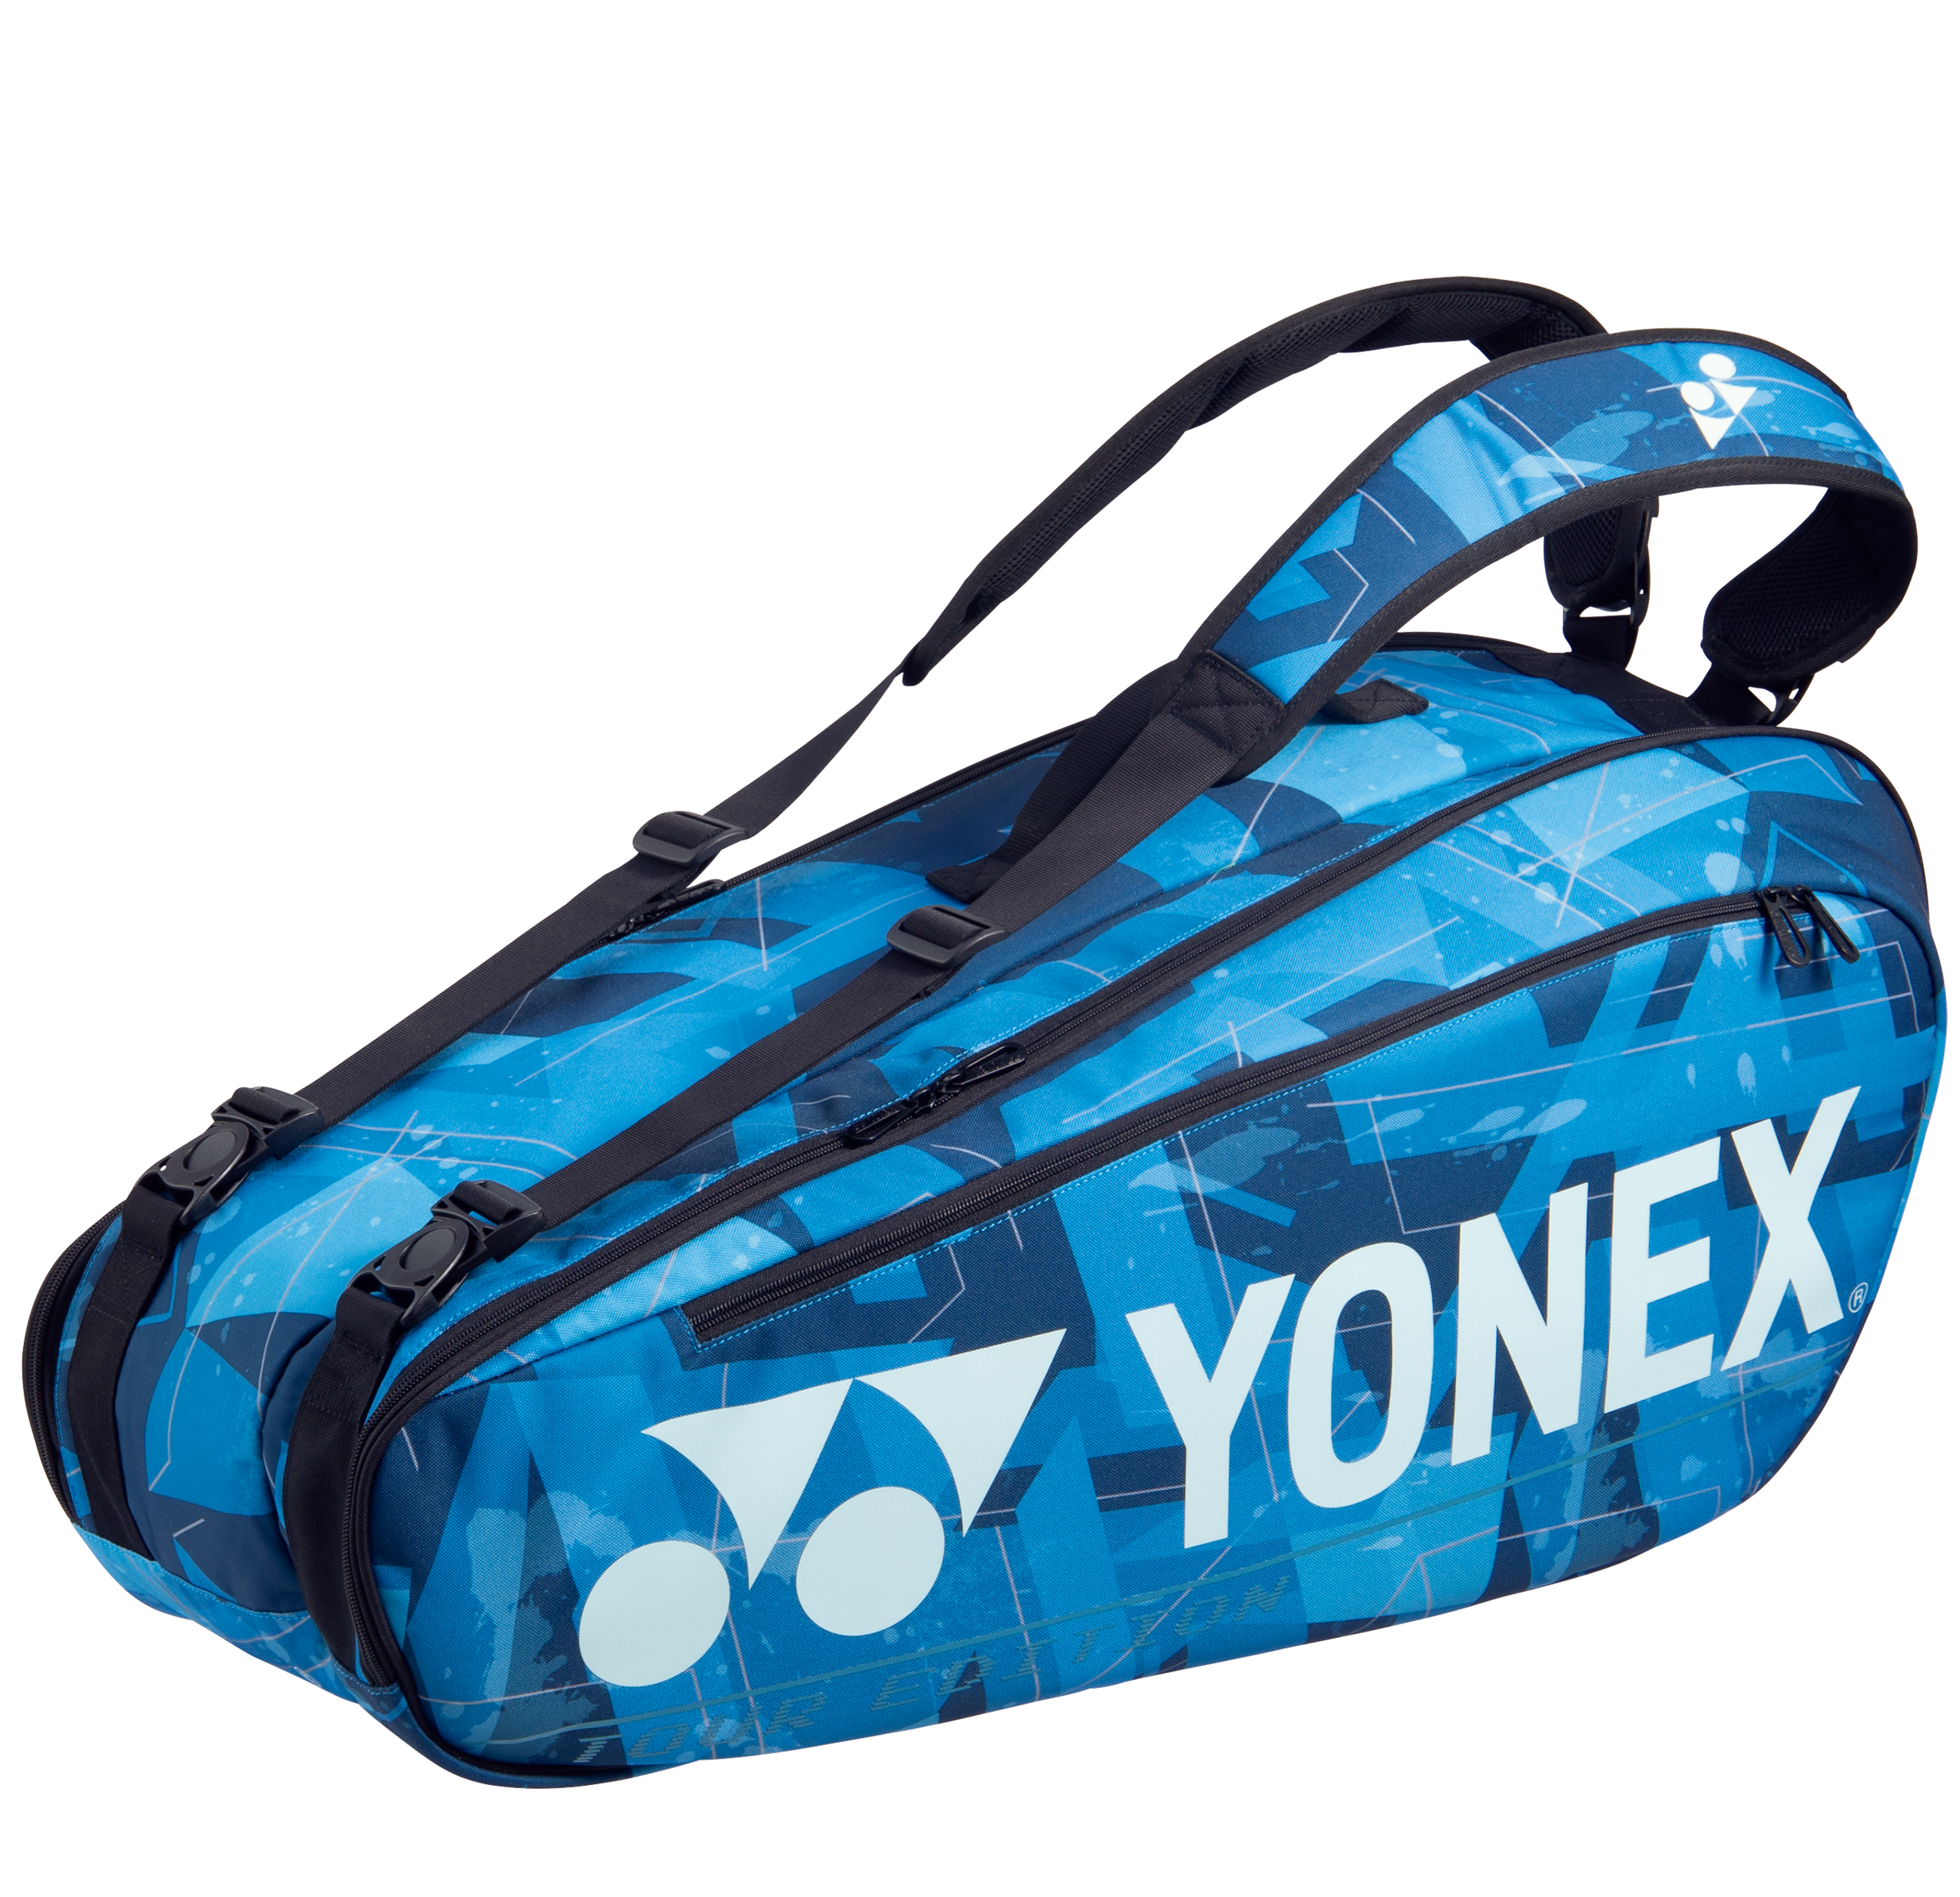 YONEX 6 Tennis/8+ Badminton Racquet Pro Tournament Bag BA92026EX, Water Blue, 2021 New